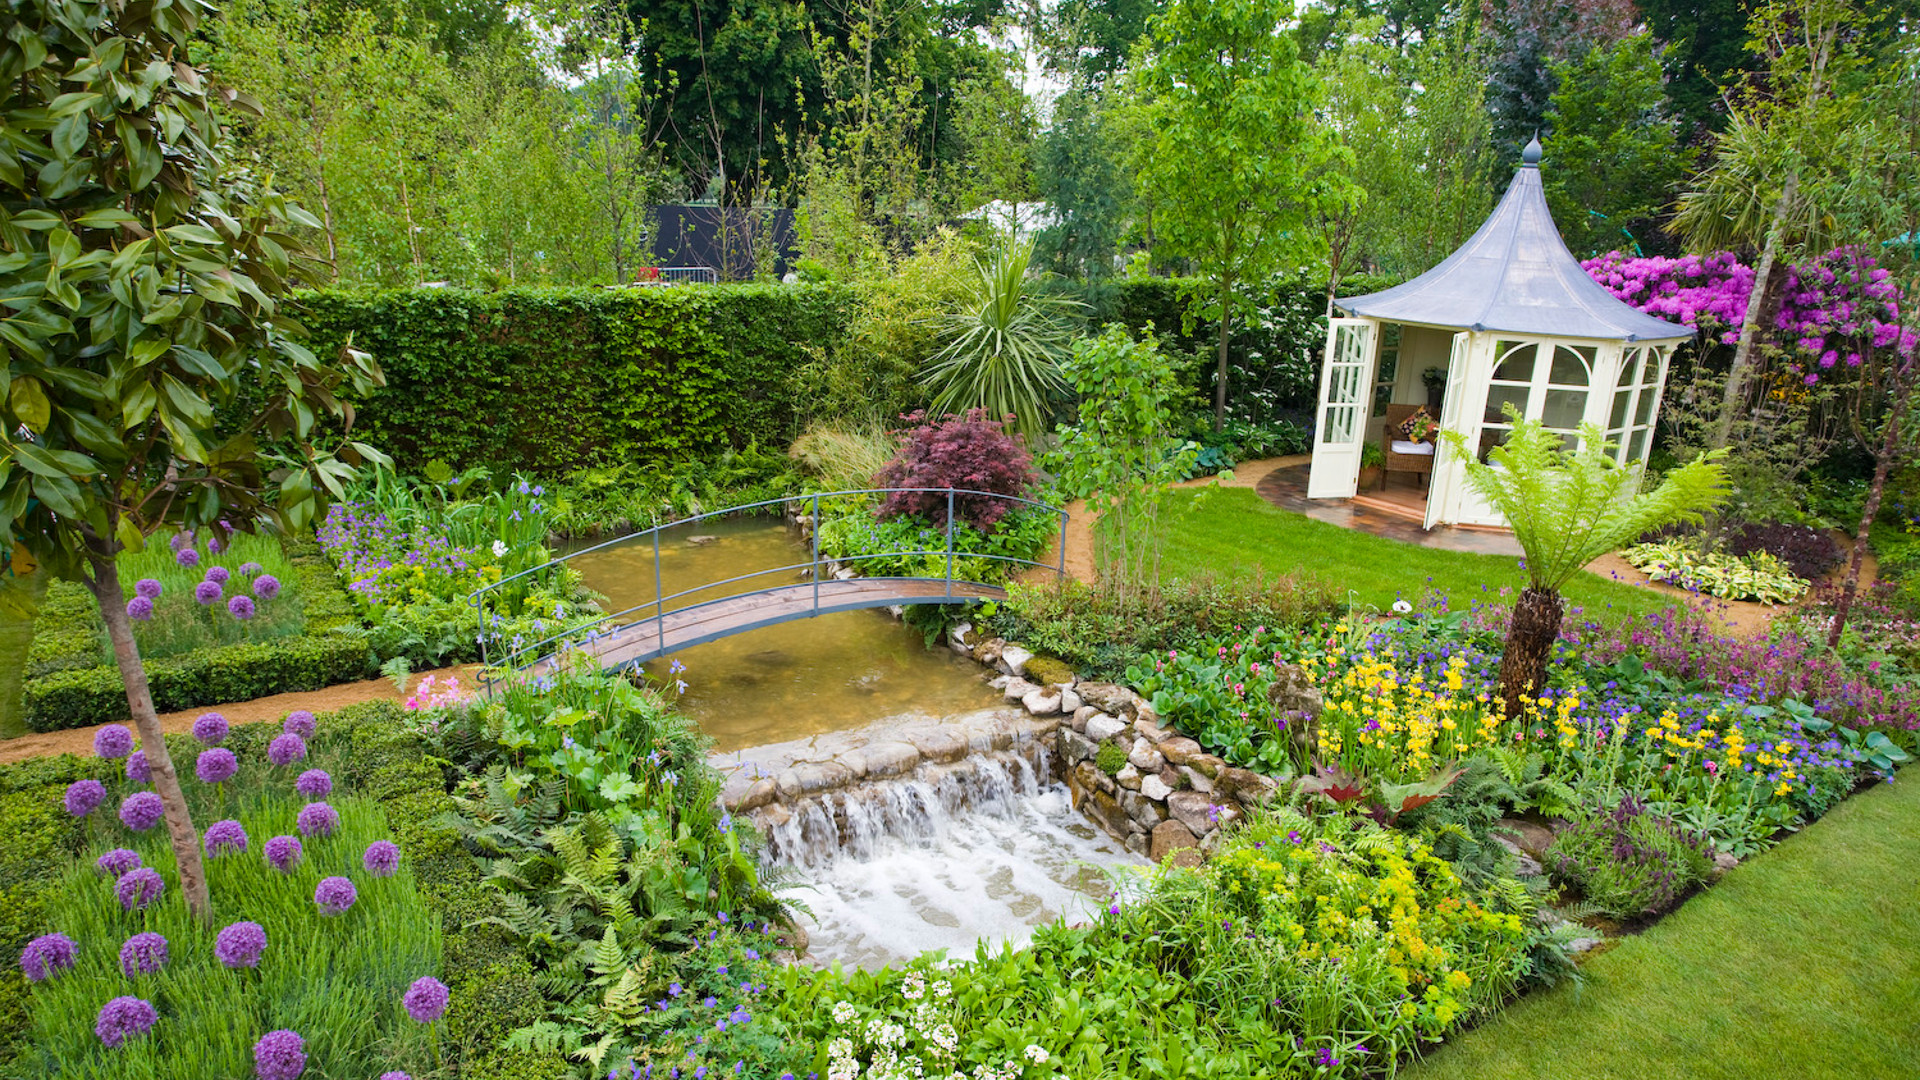 Tim austen garden designs designer gardens for Garden and design